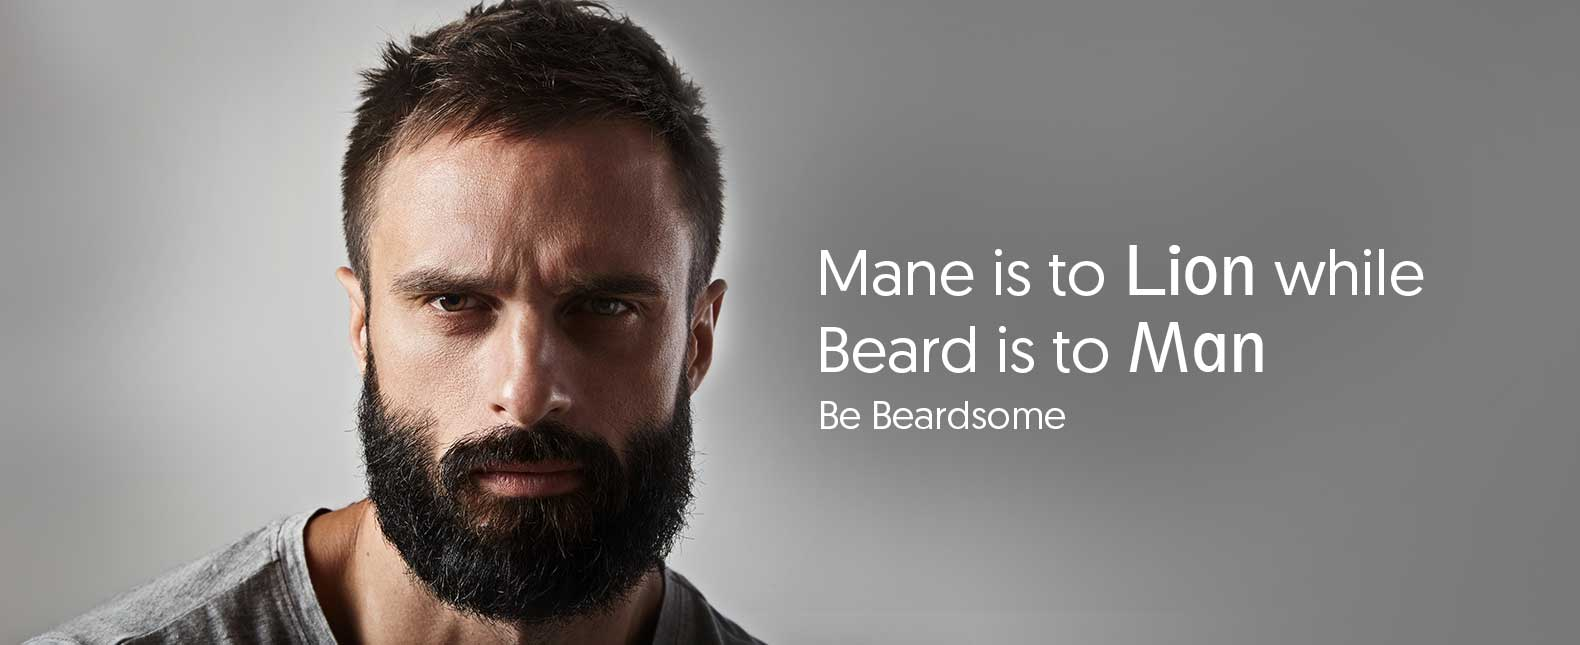 Mane is to Lion while Beard is to Man